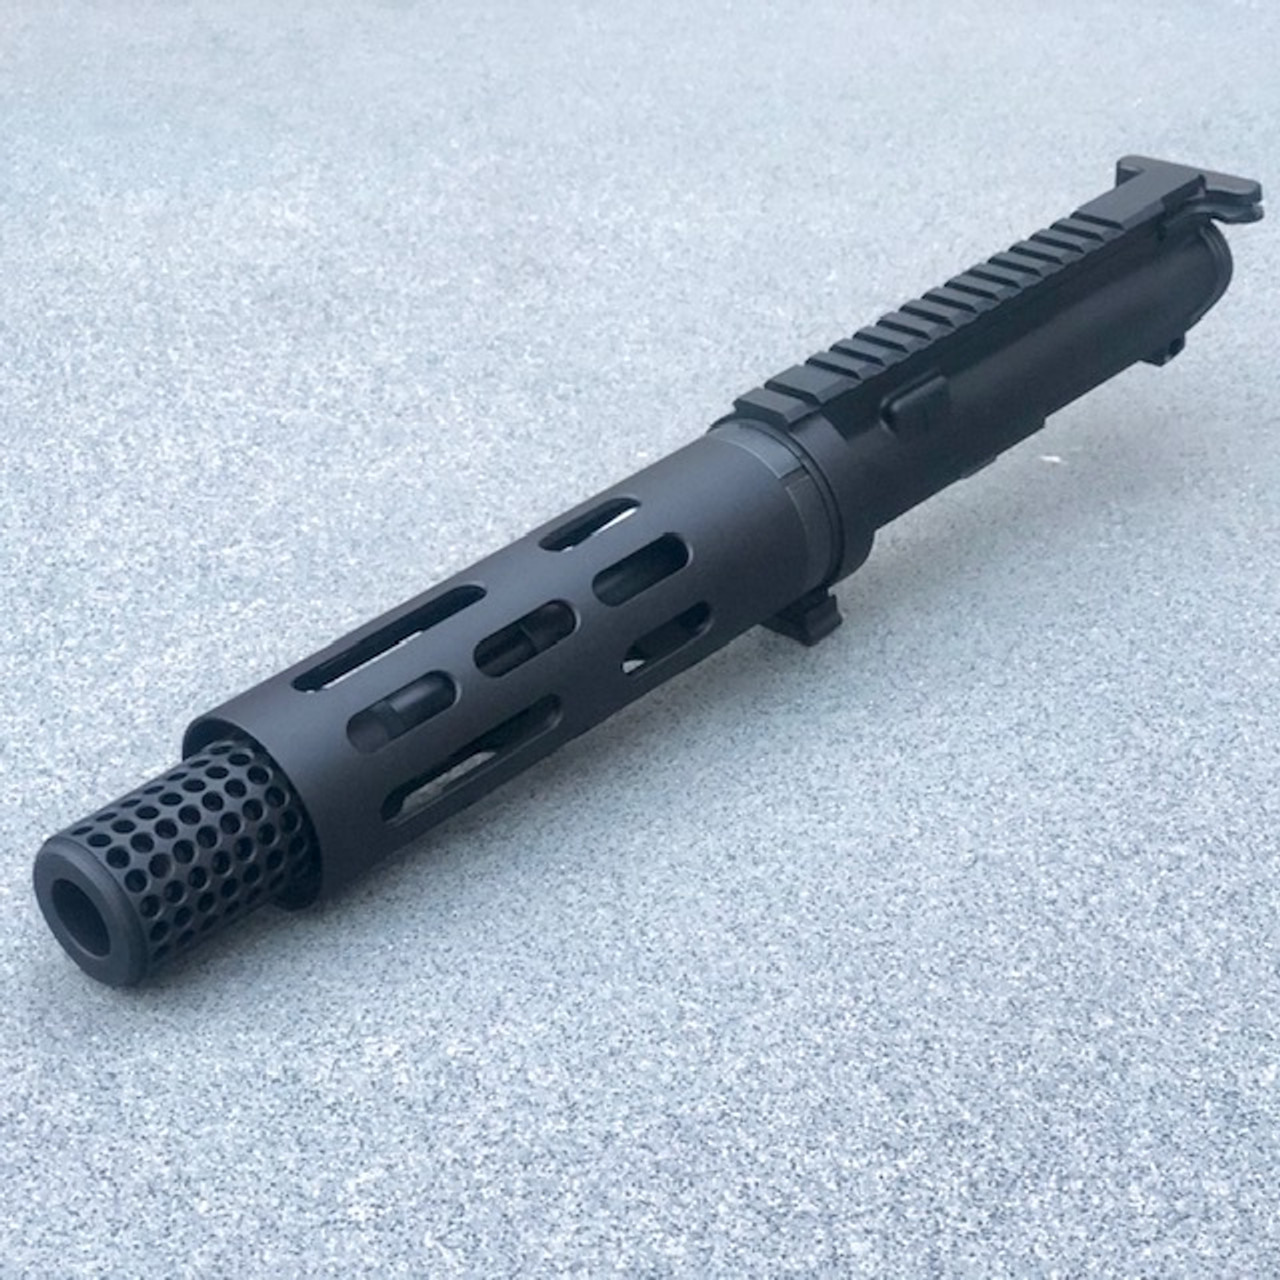 "MDX Arms 7.5""DOLOS QD Takedown Complete Upper with Smooth HG, Socom Dummy Suppressor Left Side"